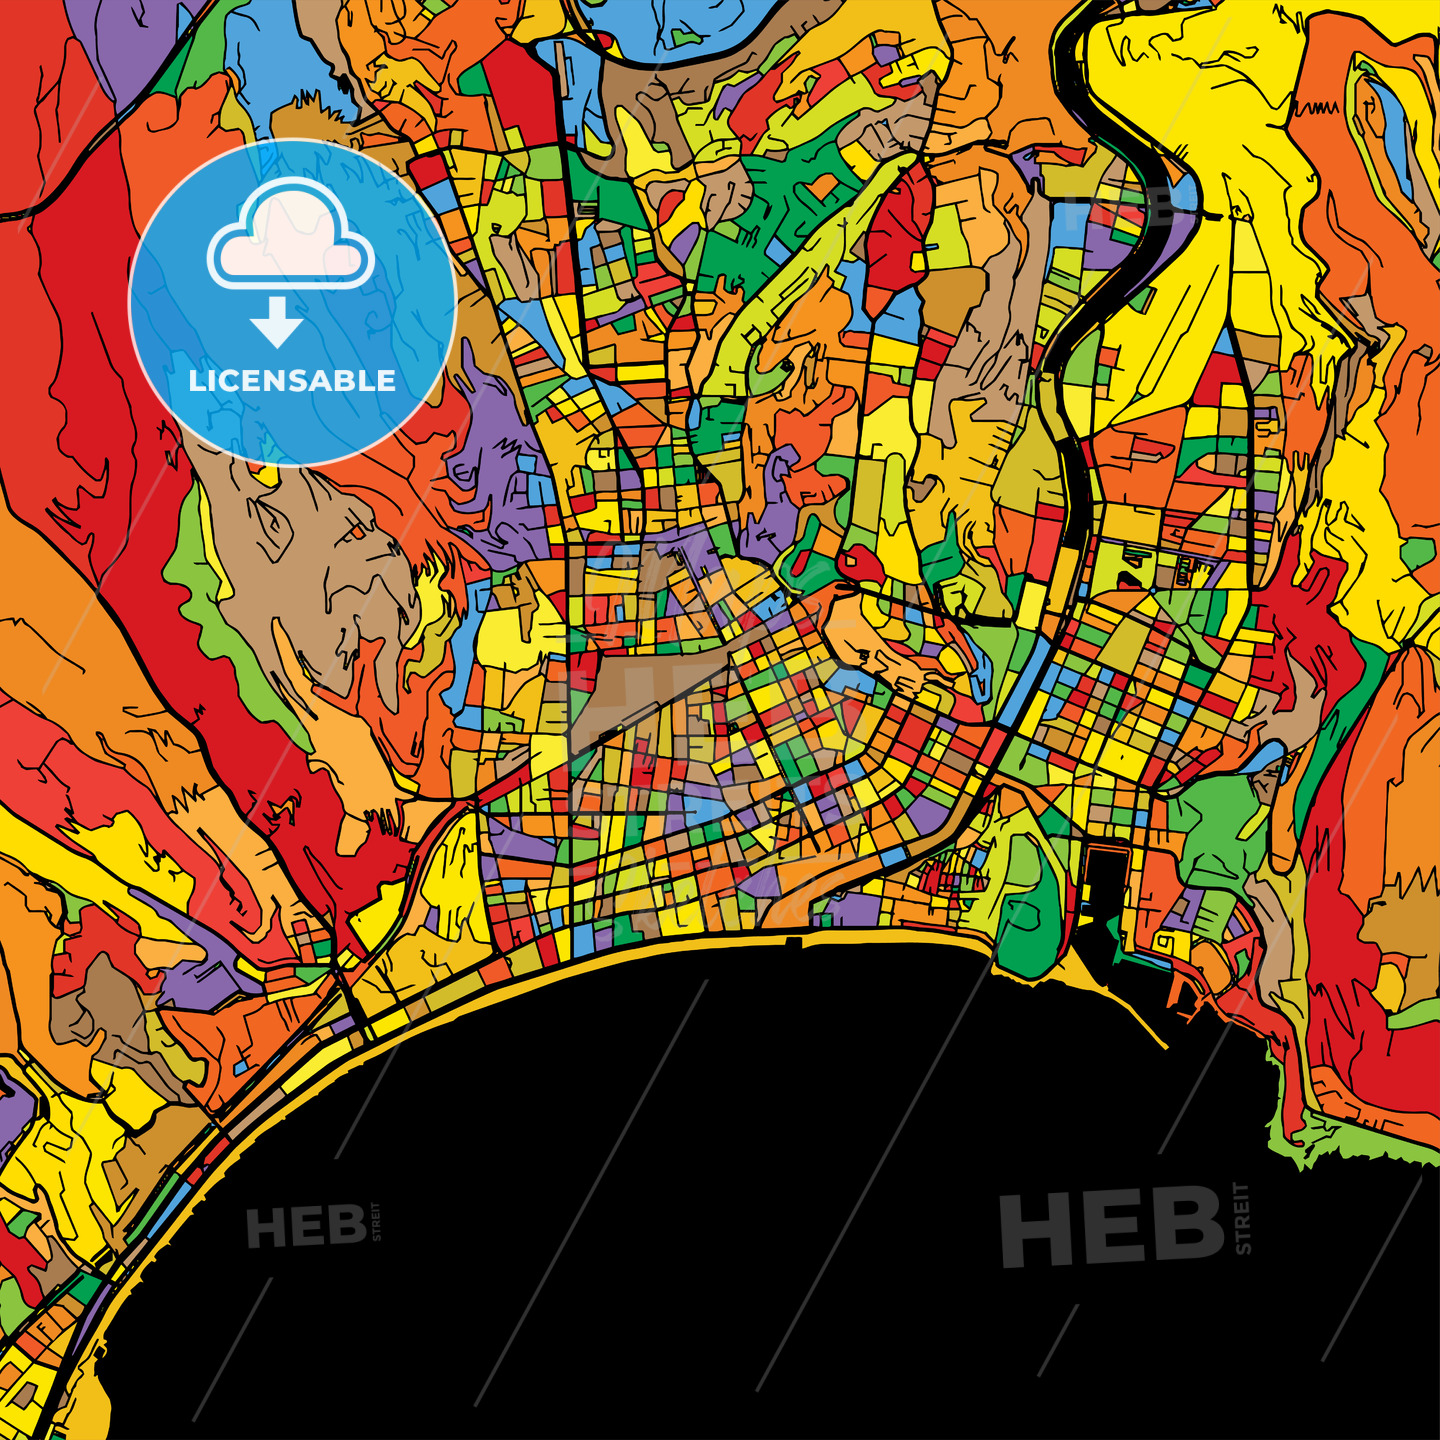 Nice Colorful Vector Map on Black - HEBSTREIT's Sketches